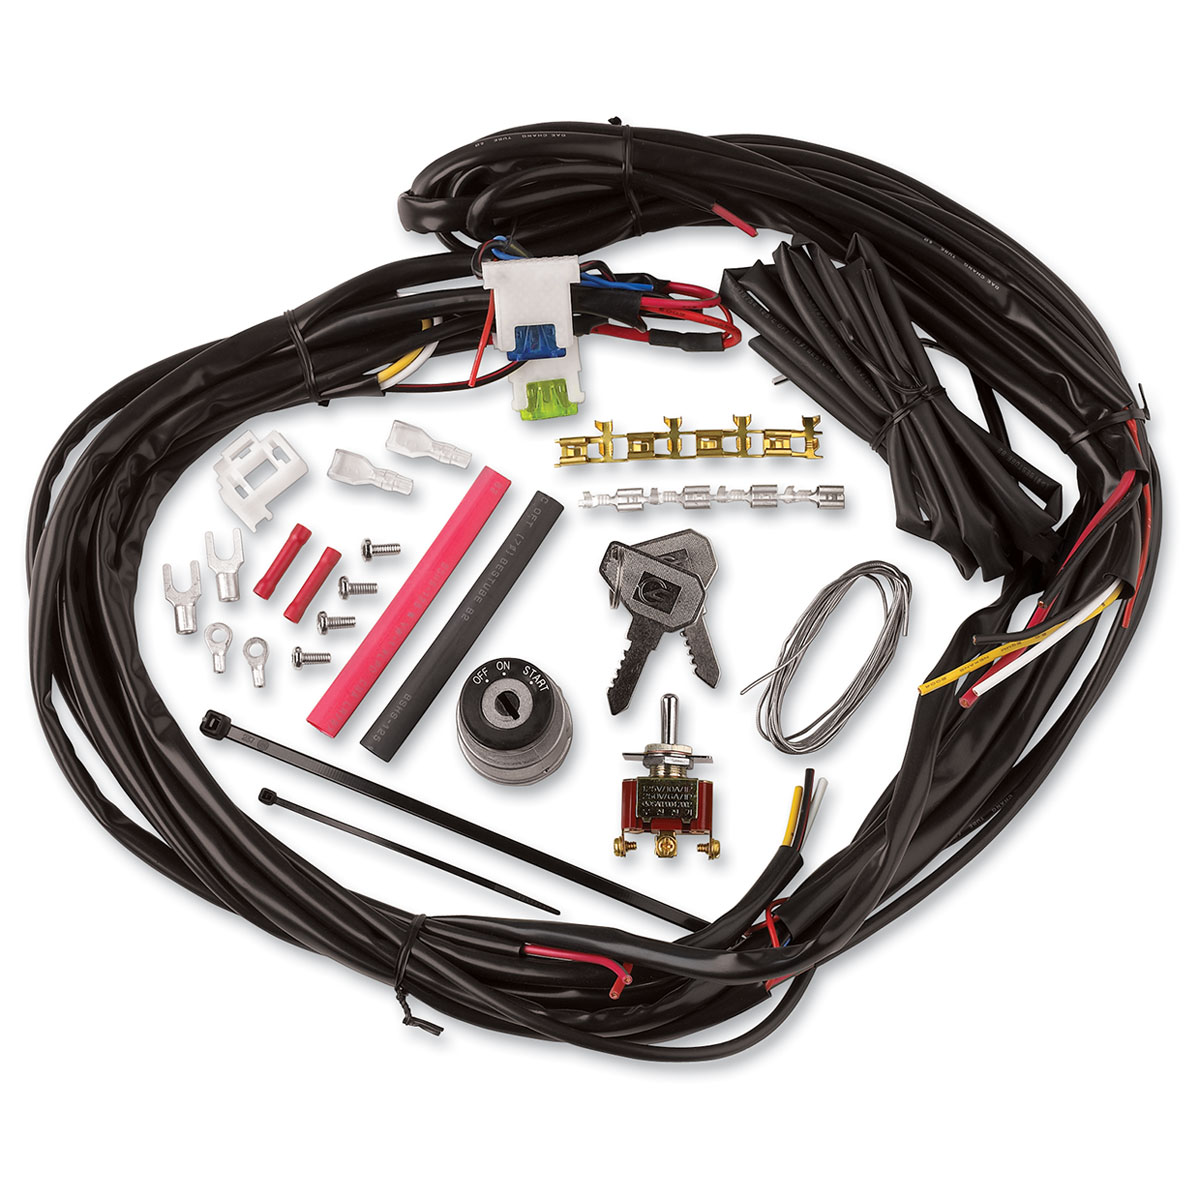 CycleVisions Custom Wire Harness